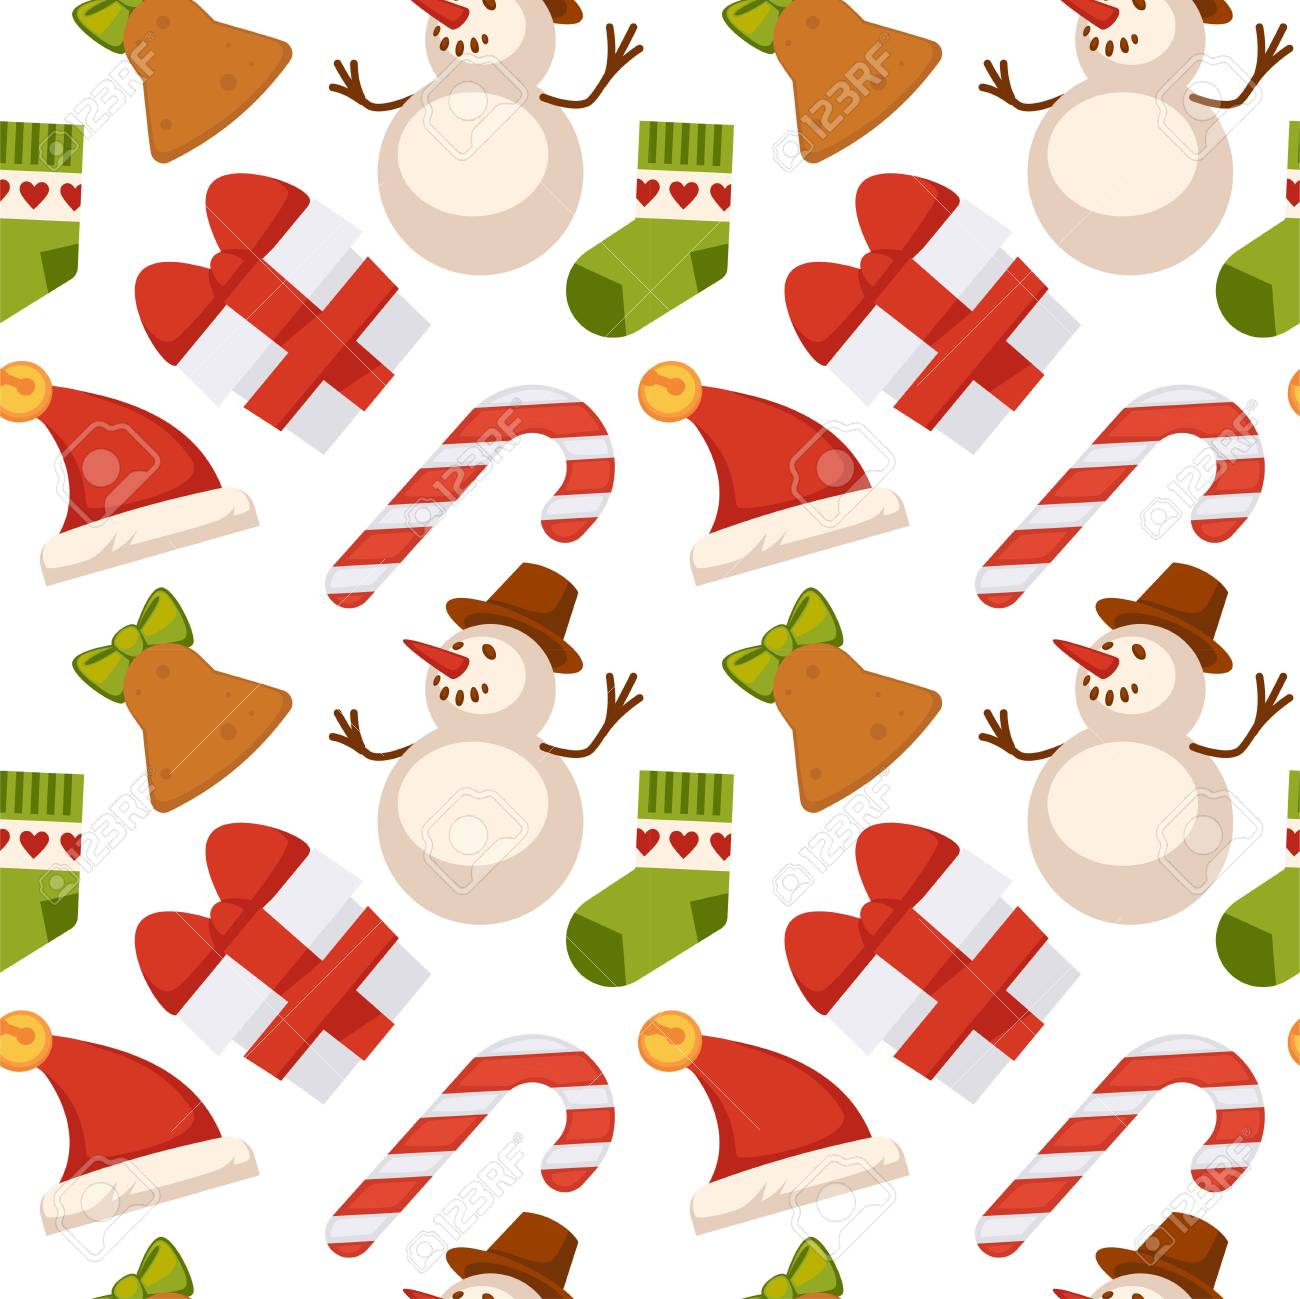 Christmas Seamless Pattern Composed Of Gift Boxes Tied With Ribbon